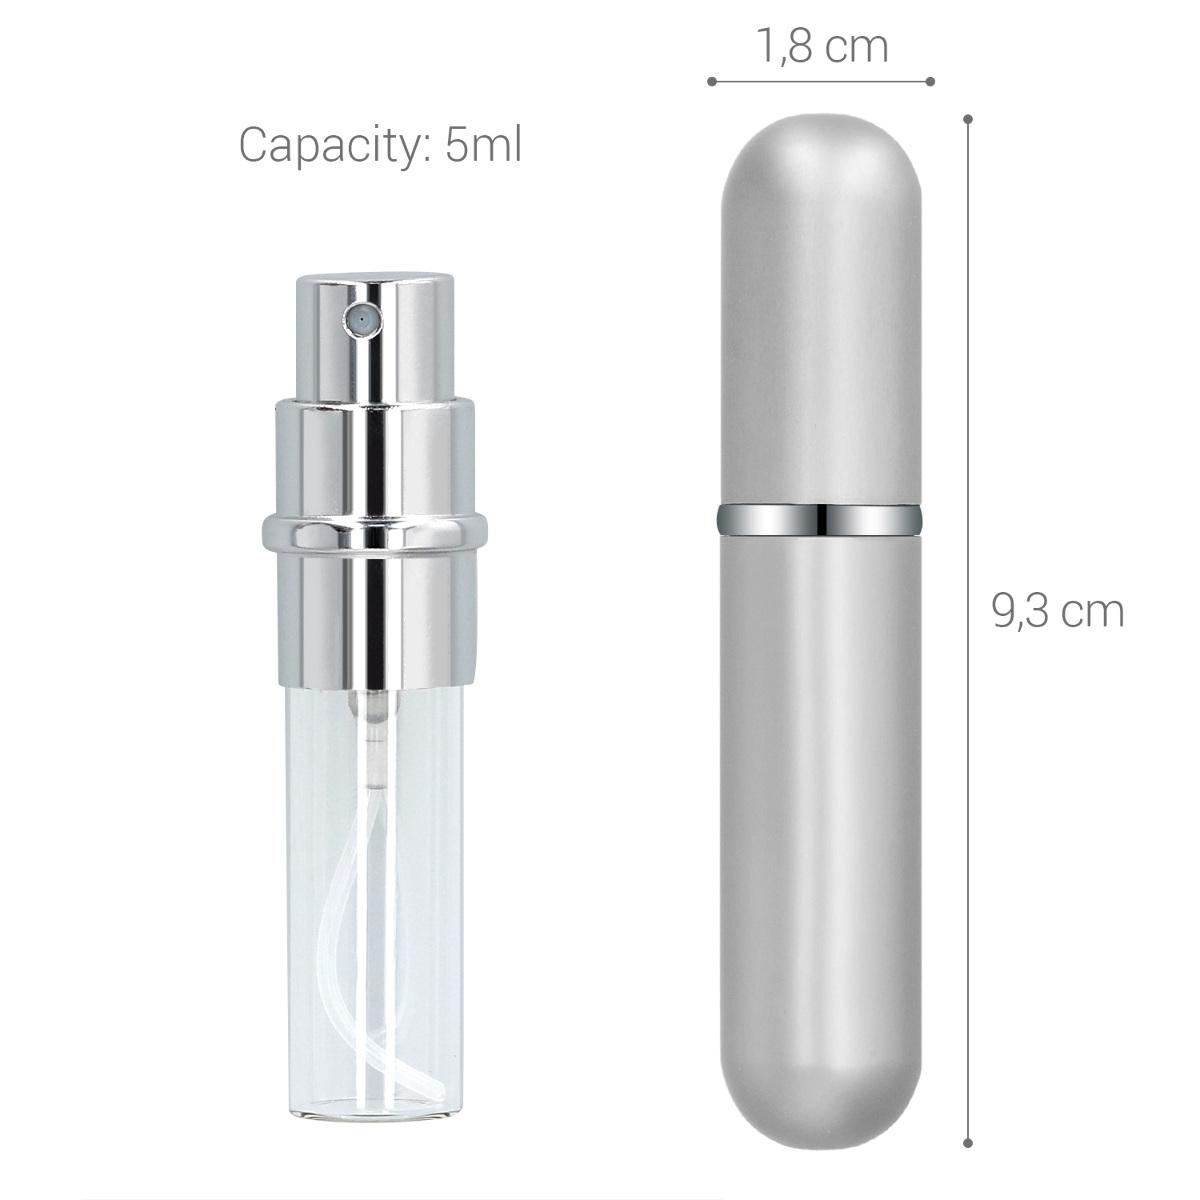 8dd3eafe53a7 Details about 2x Refillable Perfume Atomizers 1 6 oz 5ml Atomisers -  Desired Color